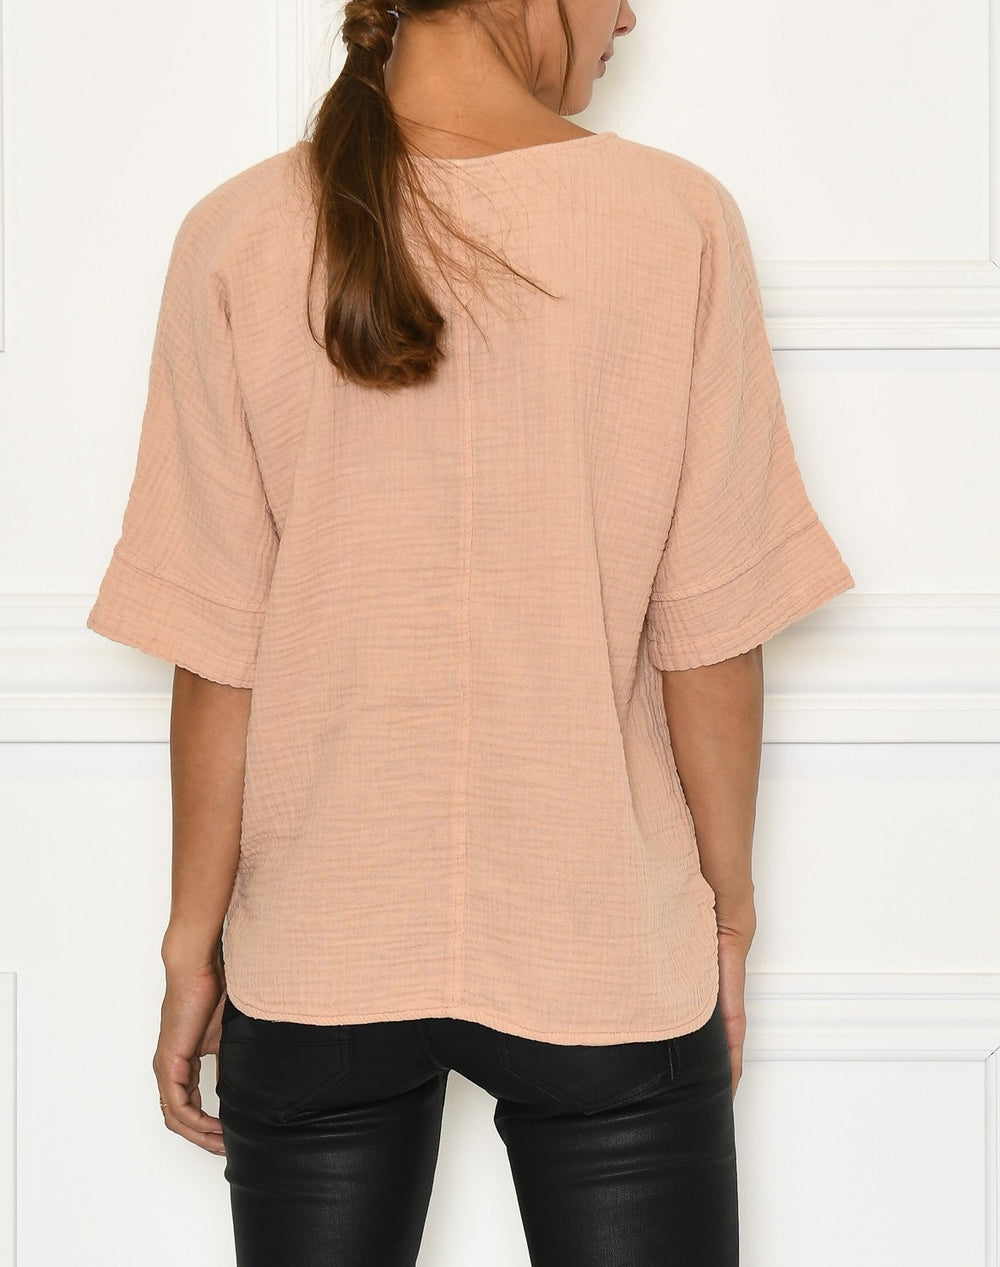 Luxzuz Helia blouse powder rose - Online-Mode